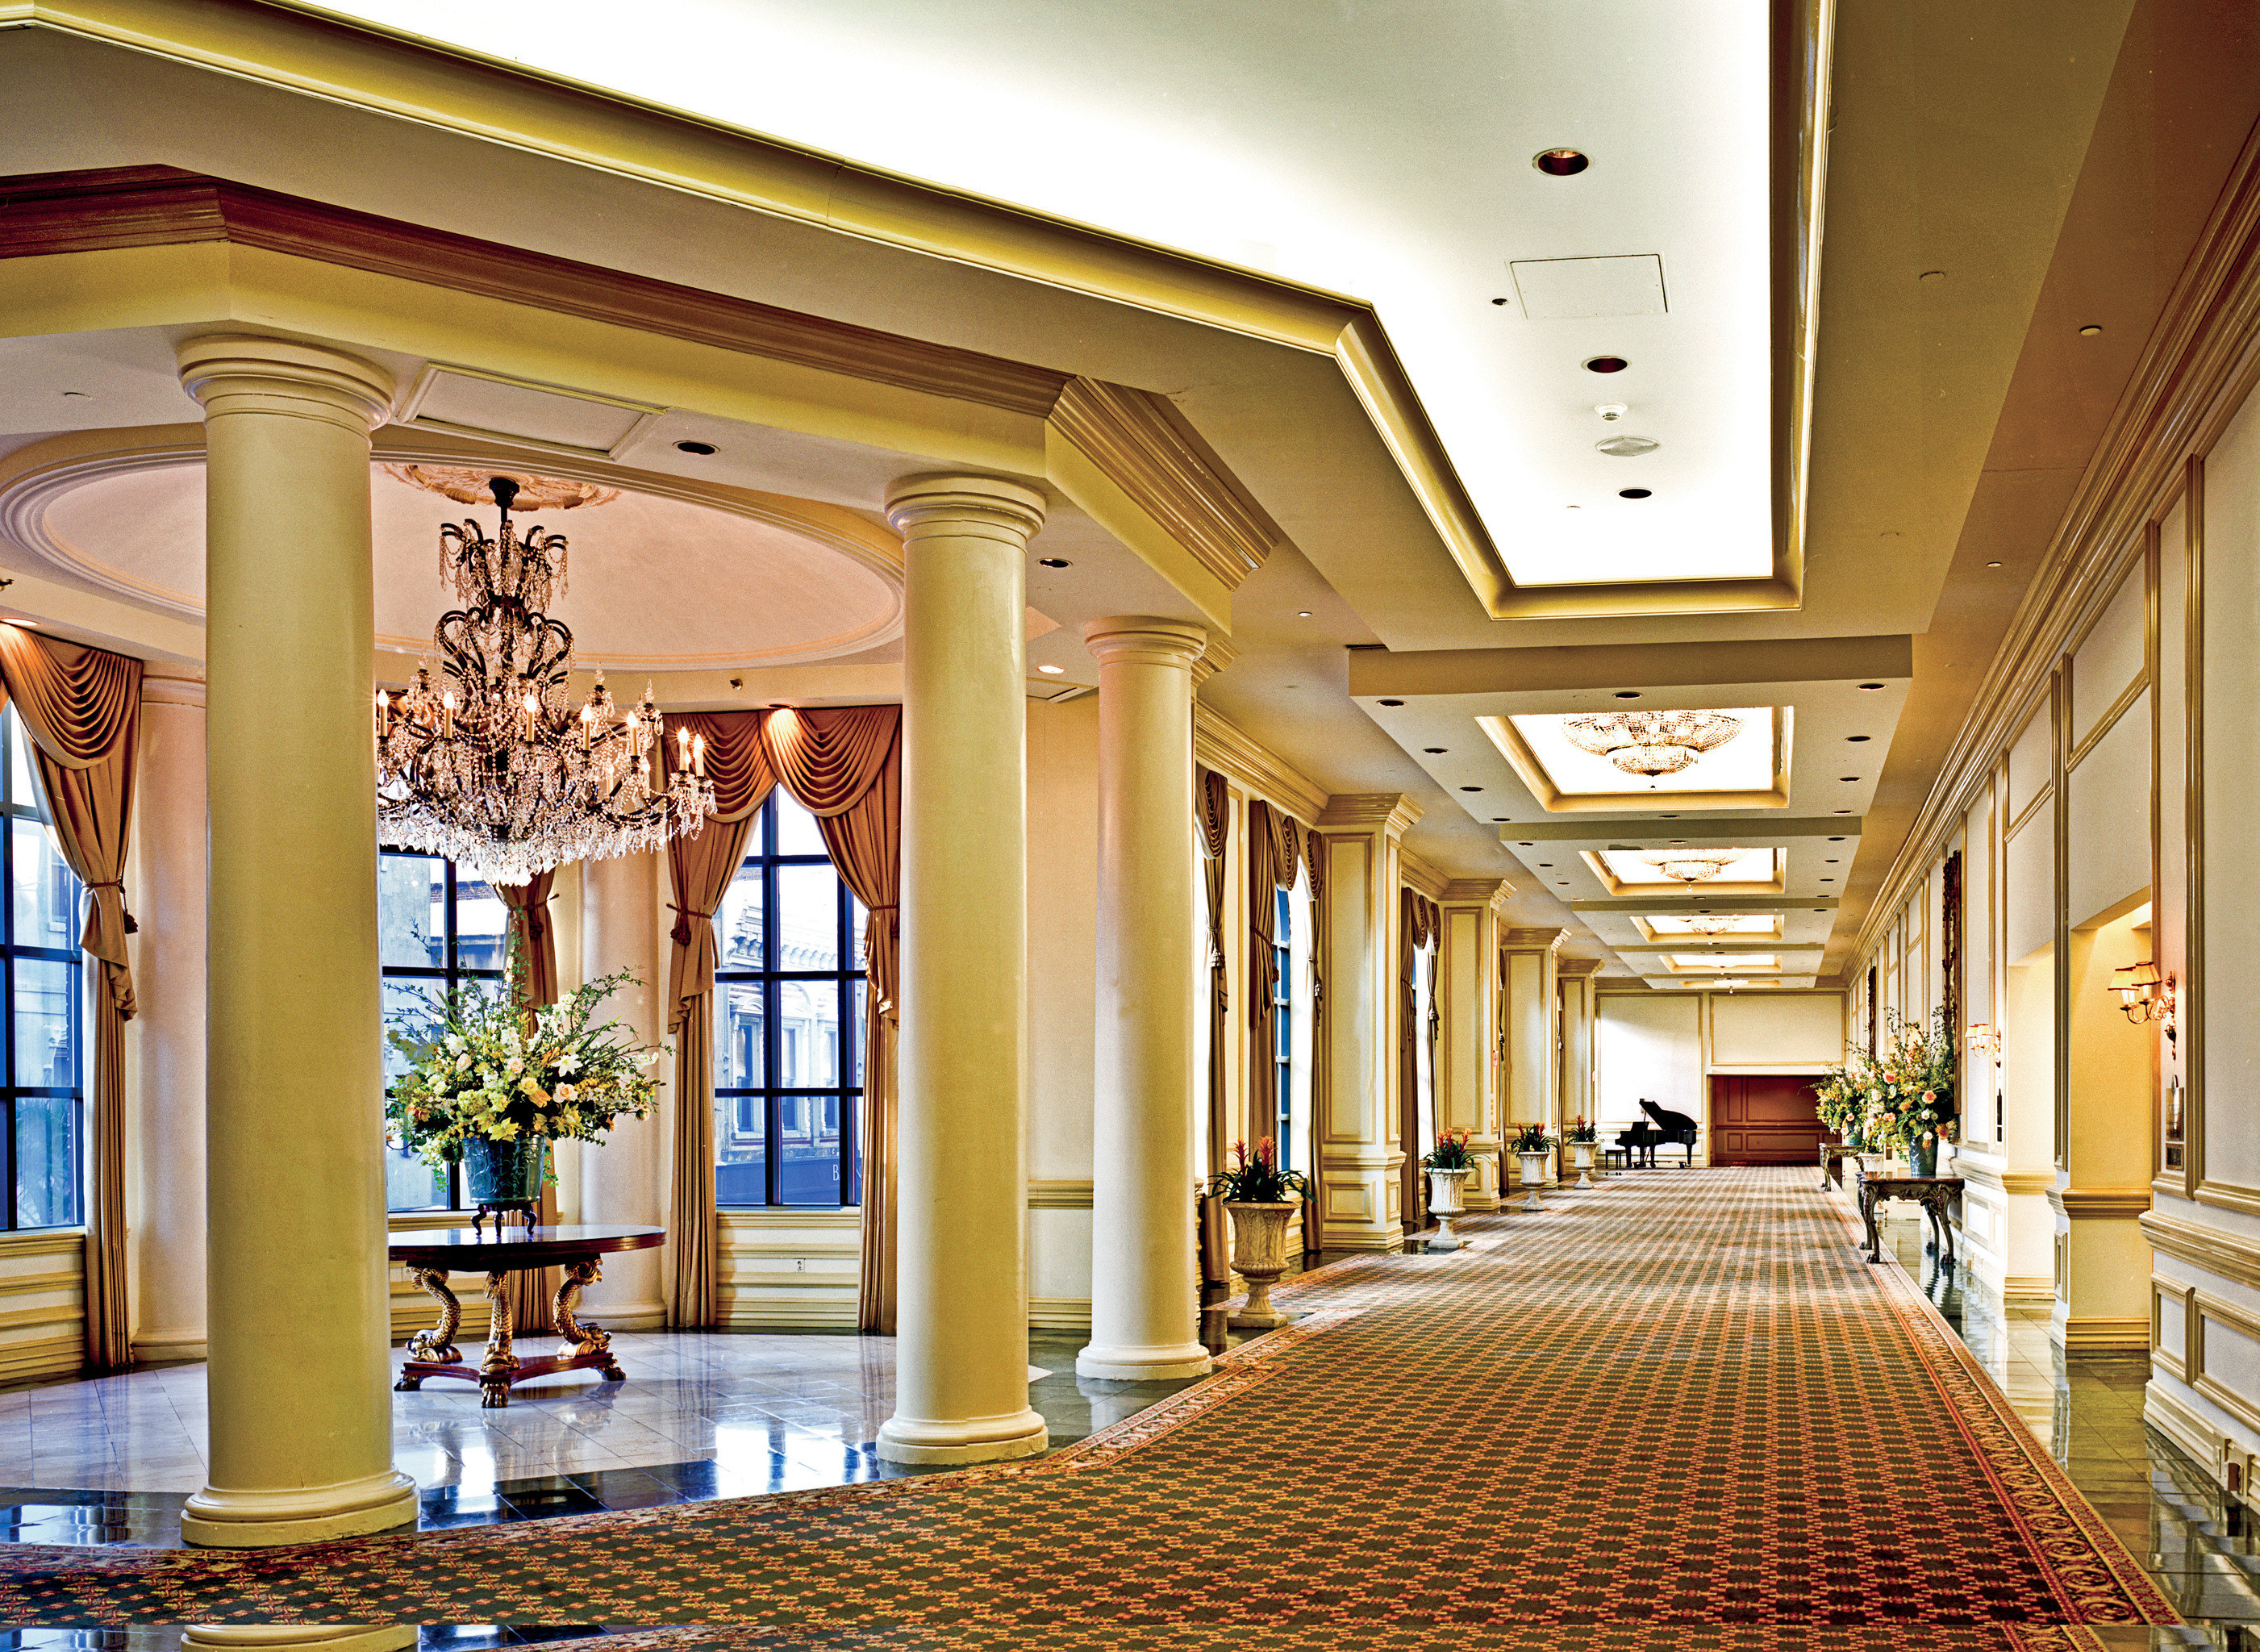 City Classic Elegant Historic Lobby Scenic views building Architecture palace hall shopping mall mansion convention center ballroom aisle column library plaza colonnade